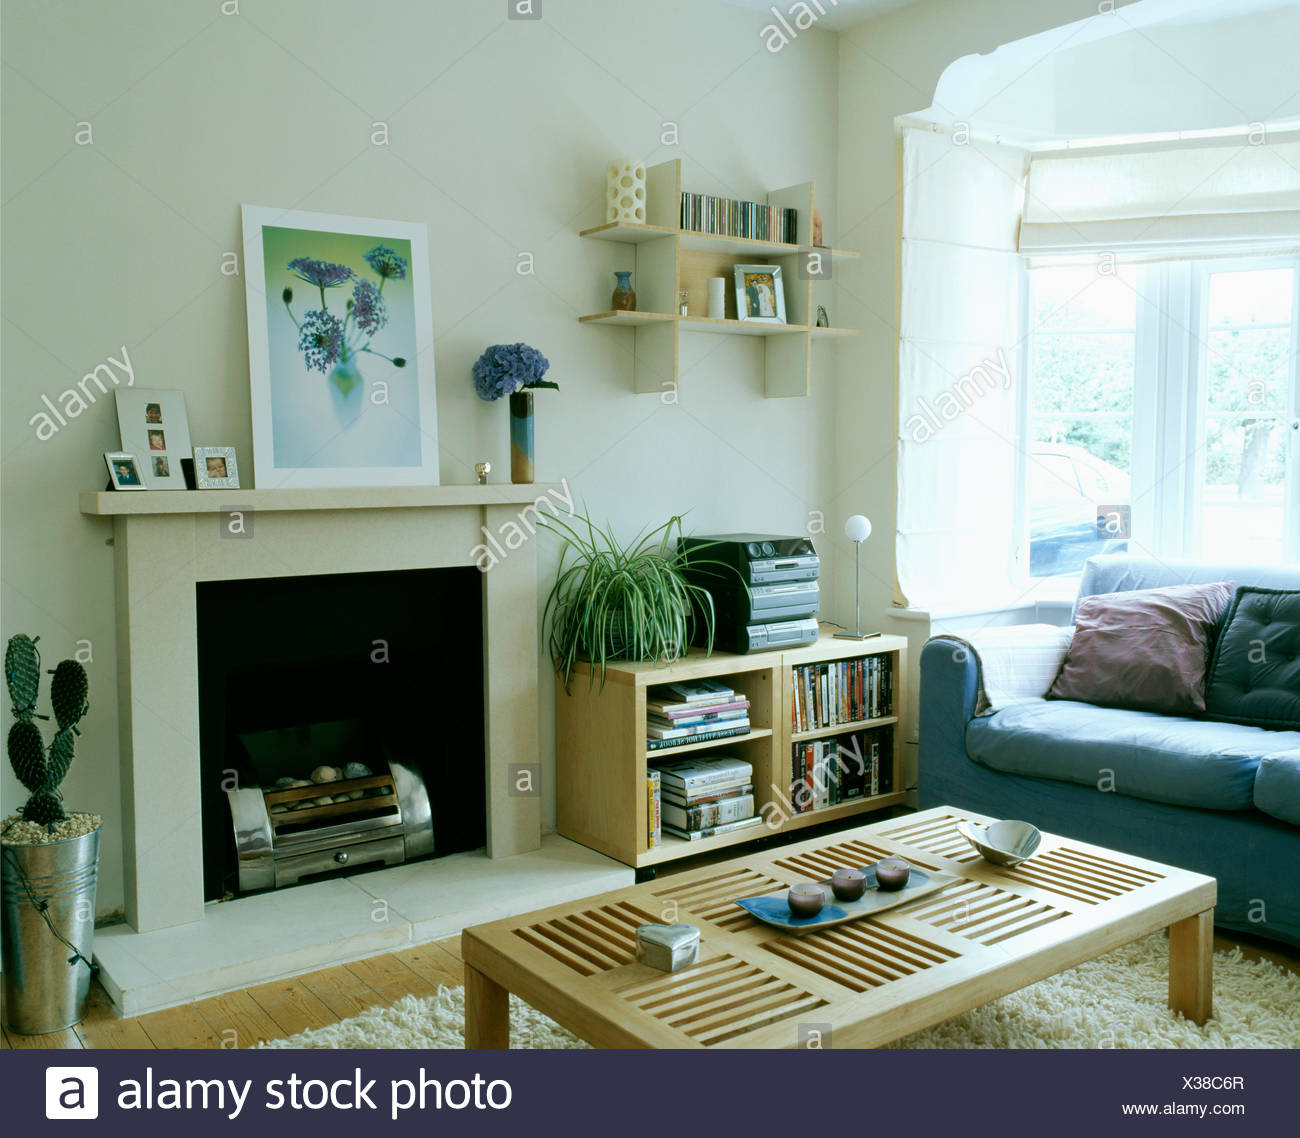 Small Wall Shelves Above Low Pale Wood Shelf Unit With Music Centre In Modern White Living Room With Simple Coffee Table Stock Photo Alamy